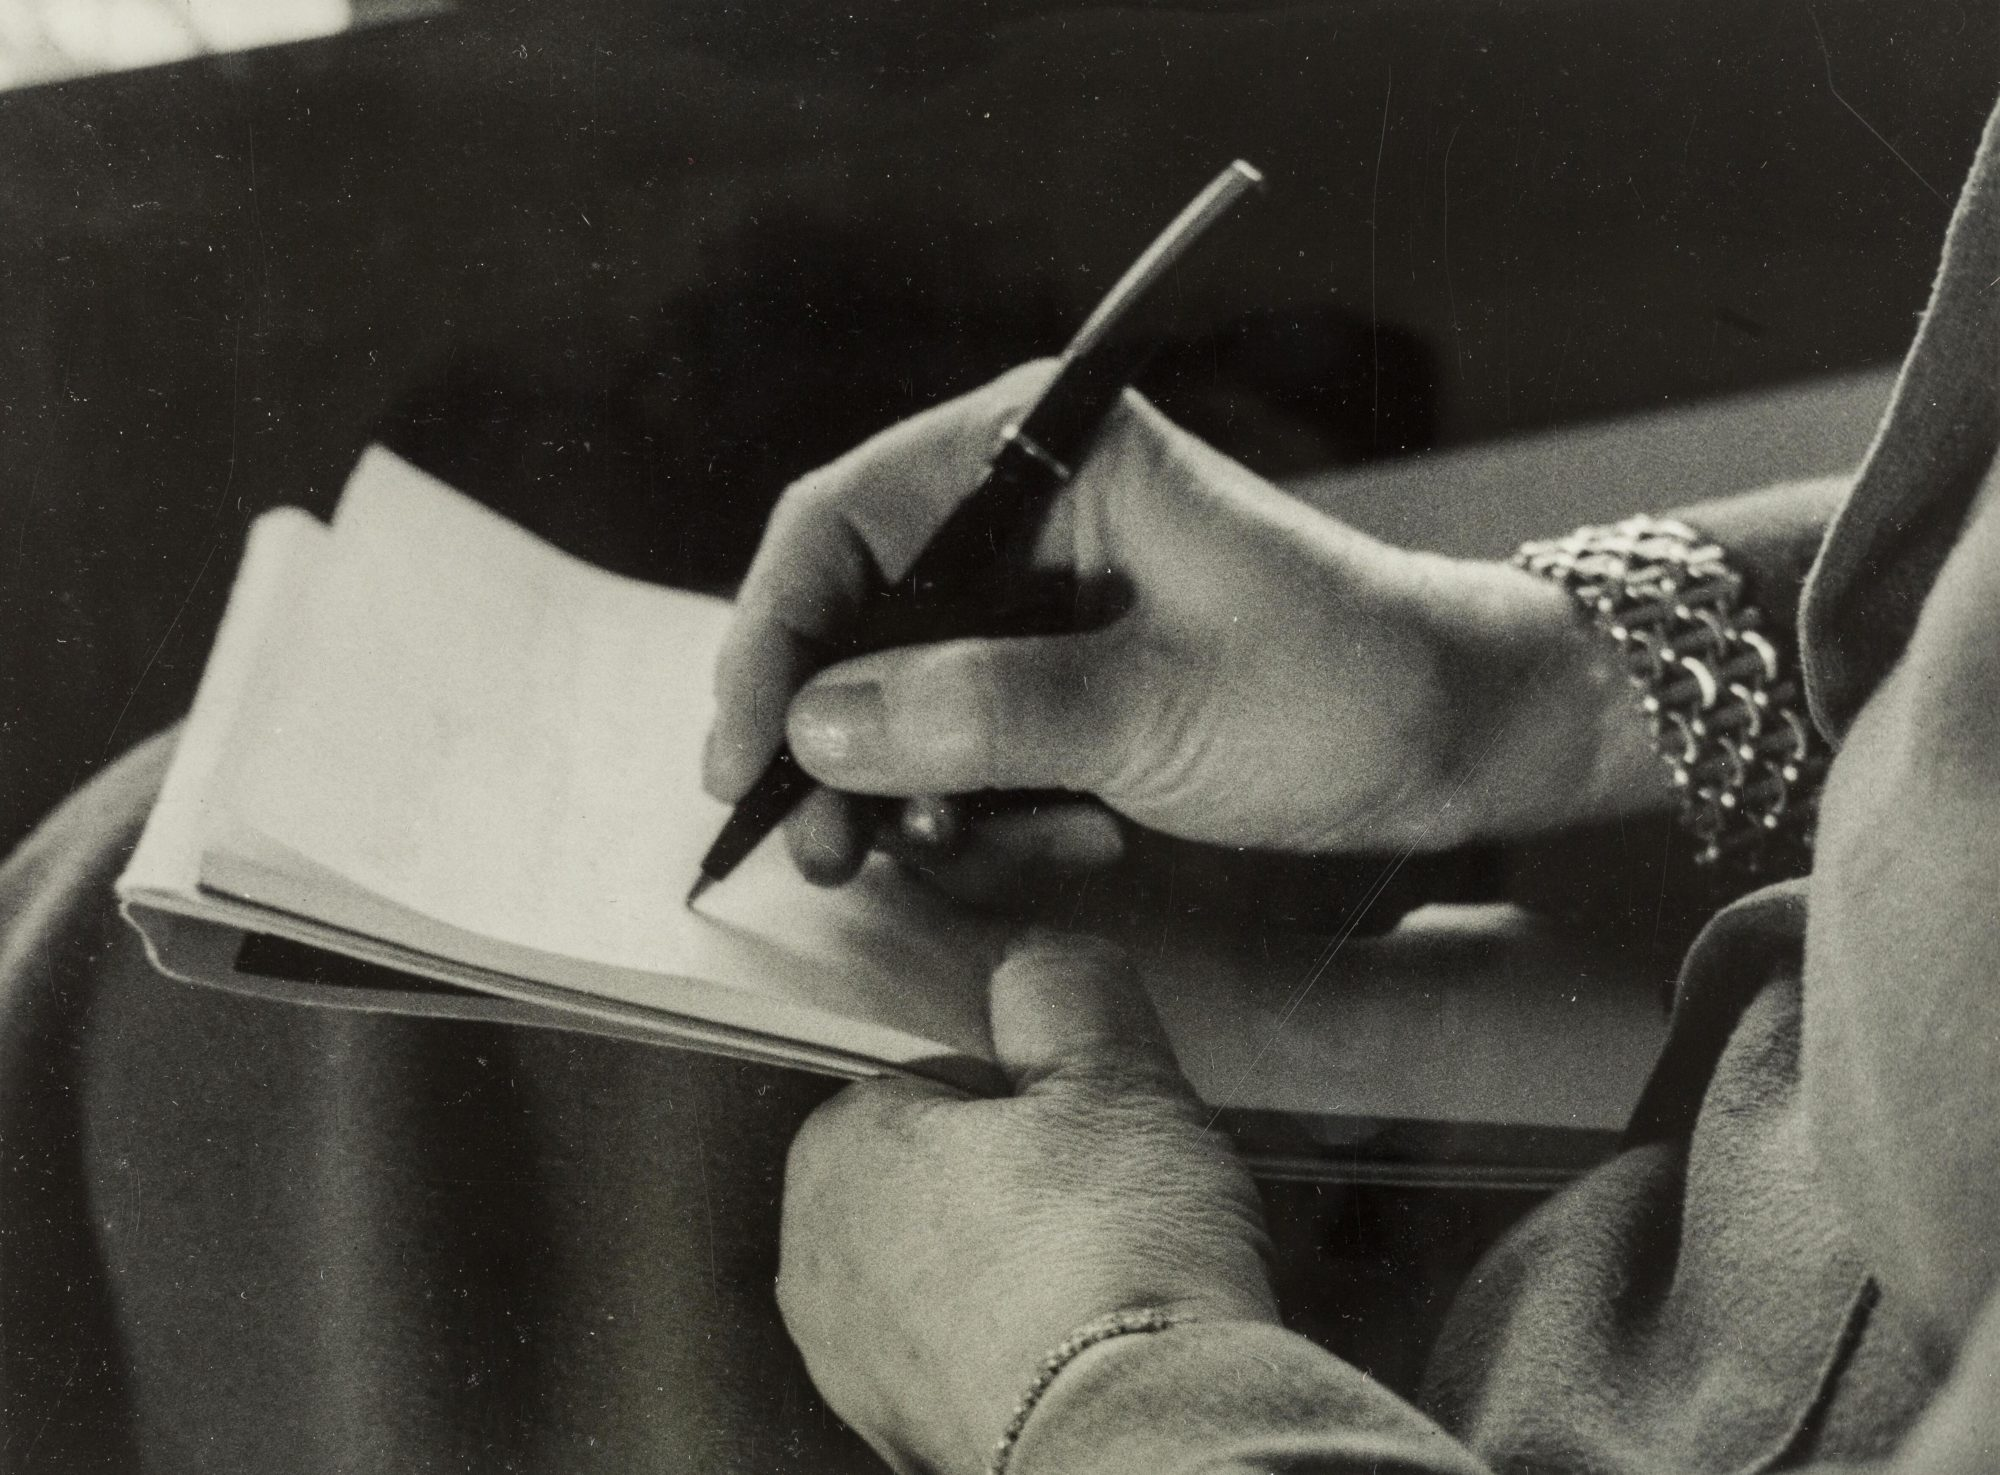 Black and white photo of a close up of Melanie Klein's hand writing on a notepad